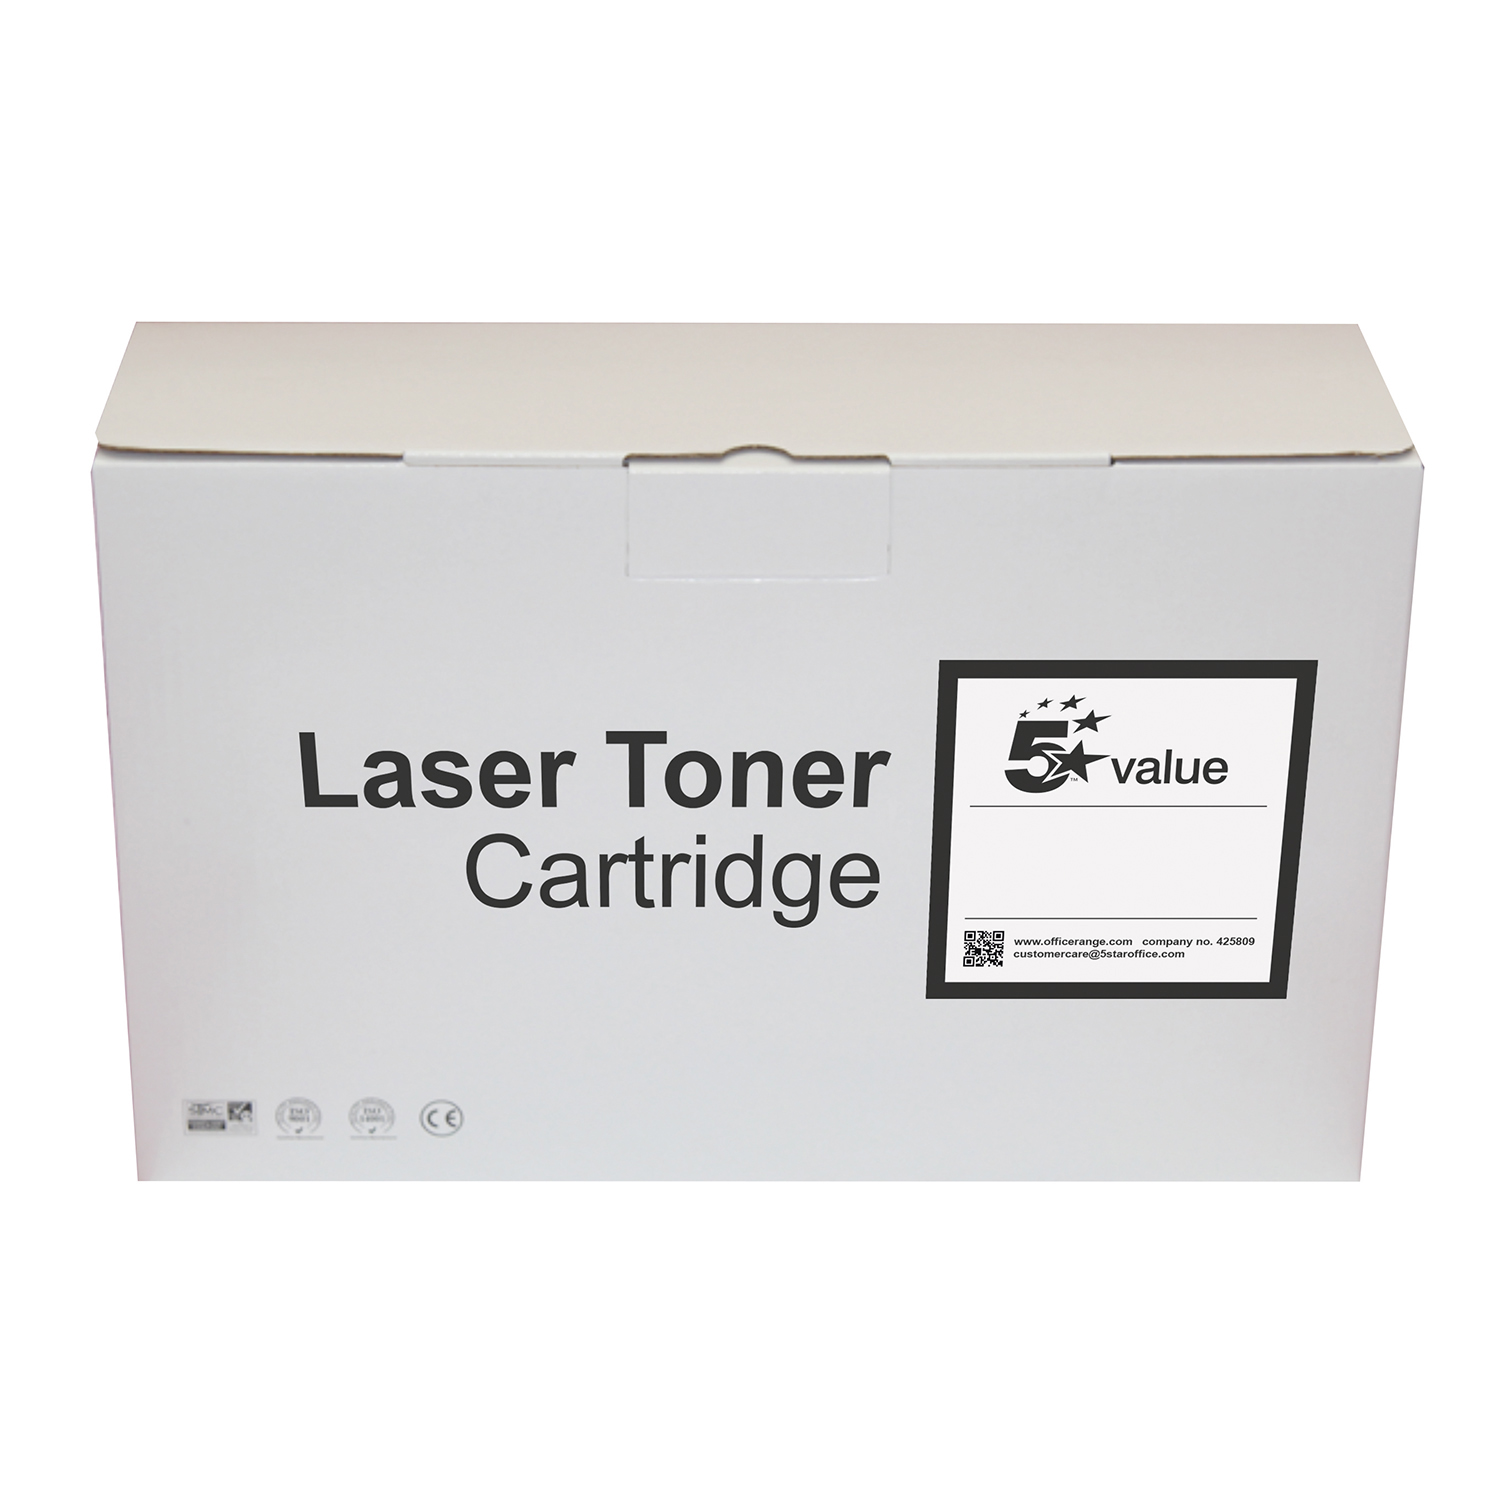 5 Star Value Remanufactured Toner Cartridge Black [Brother TN2410 Alternative]